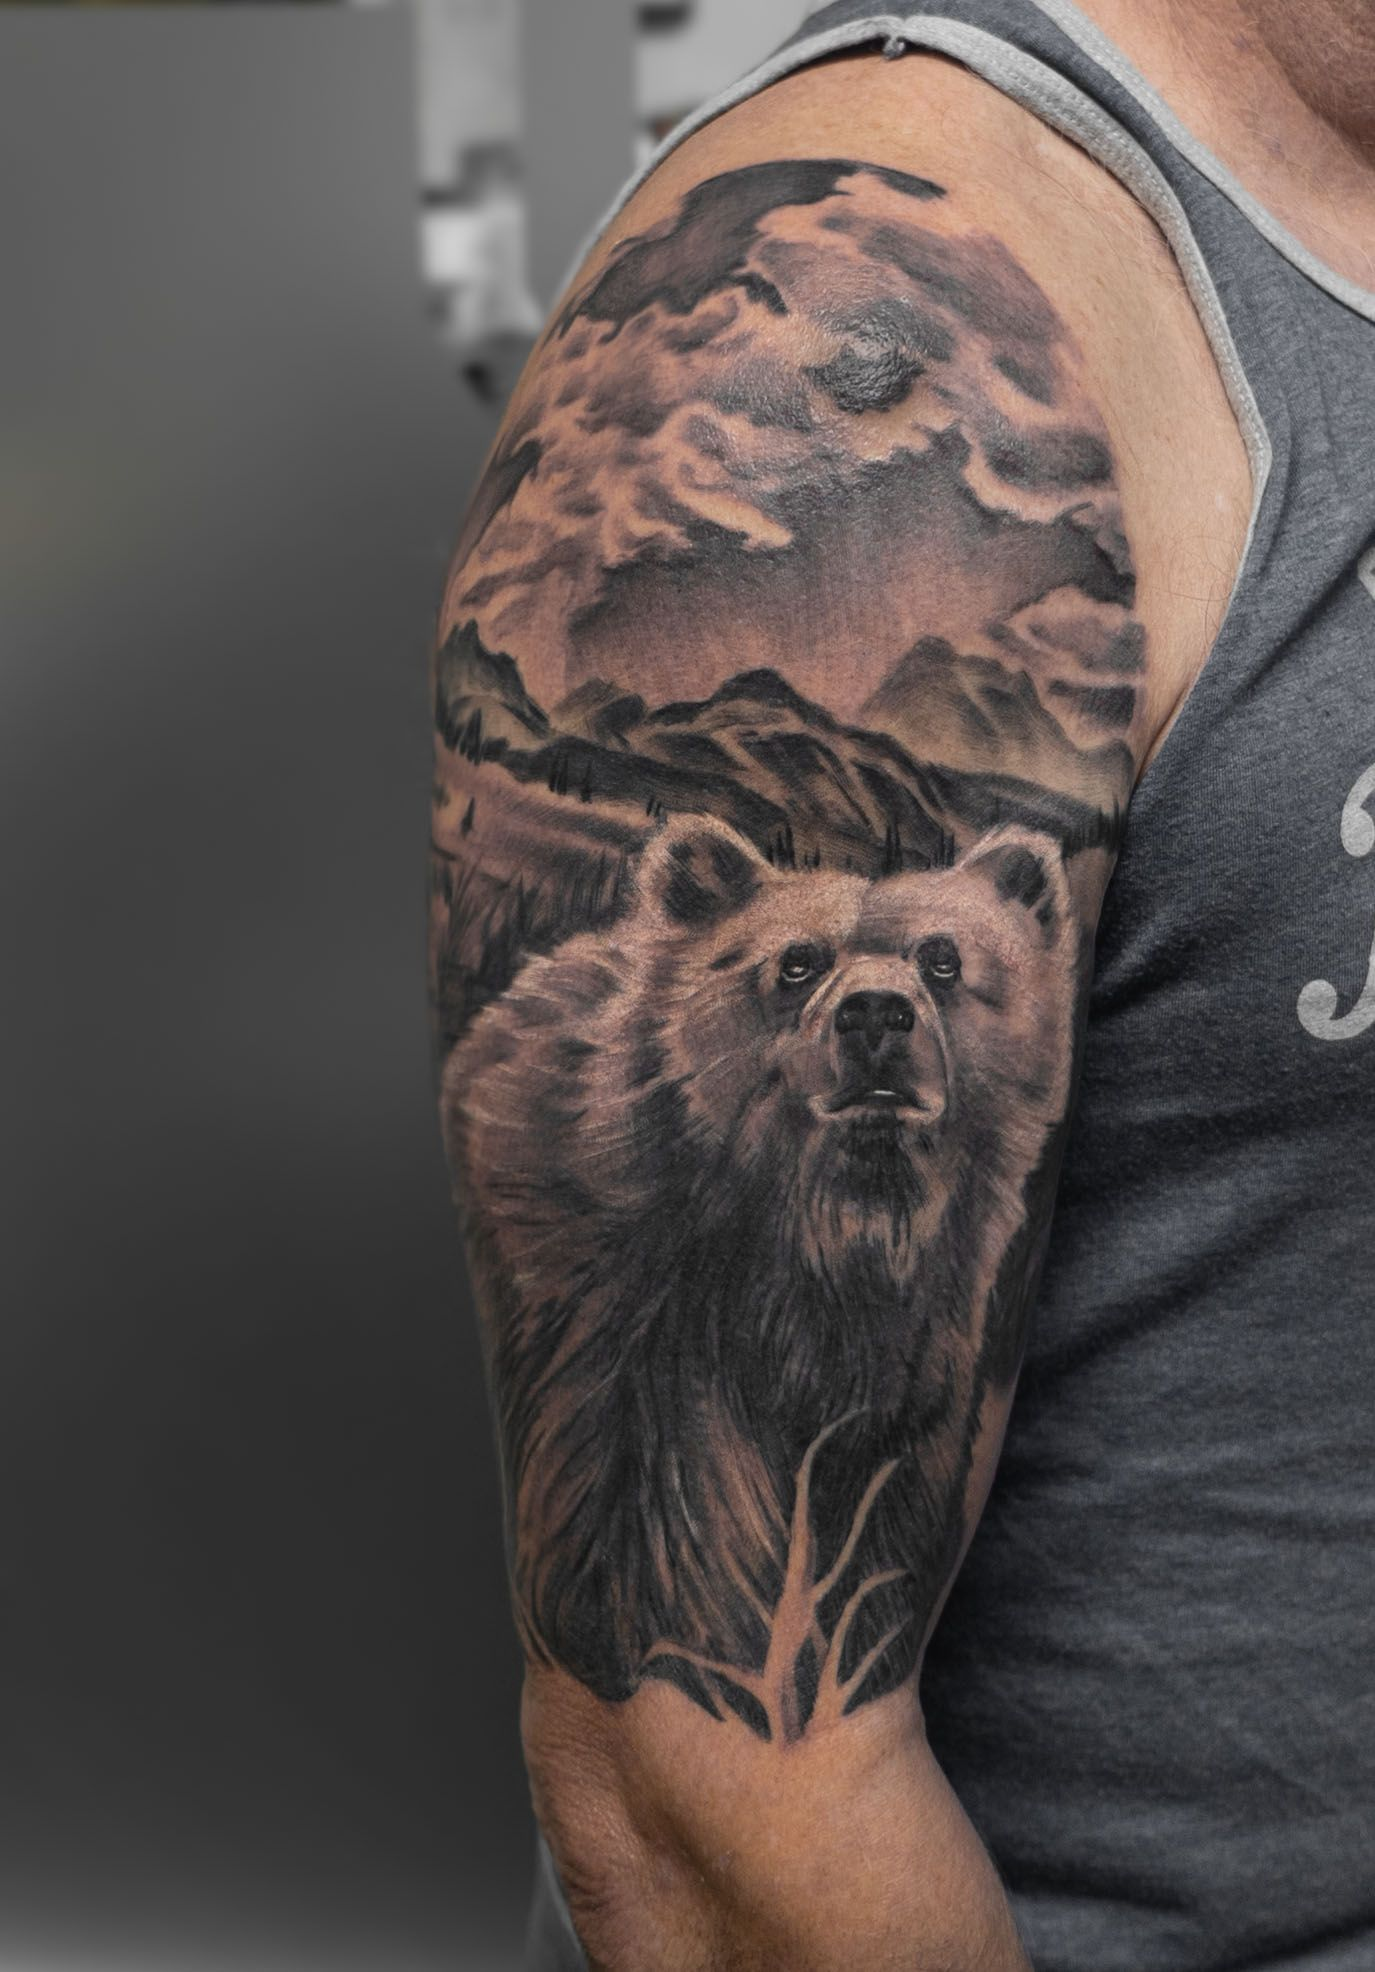 A Bear In The Wilderness Displayed In Black And Grey Realism Tattoos Tattooart Tattooer Tattoo Tattooartist Tatto Tattoo Studio Tattoos Tattoo Magazines